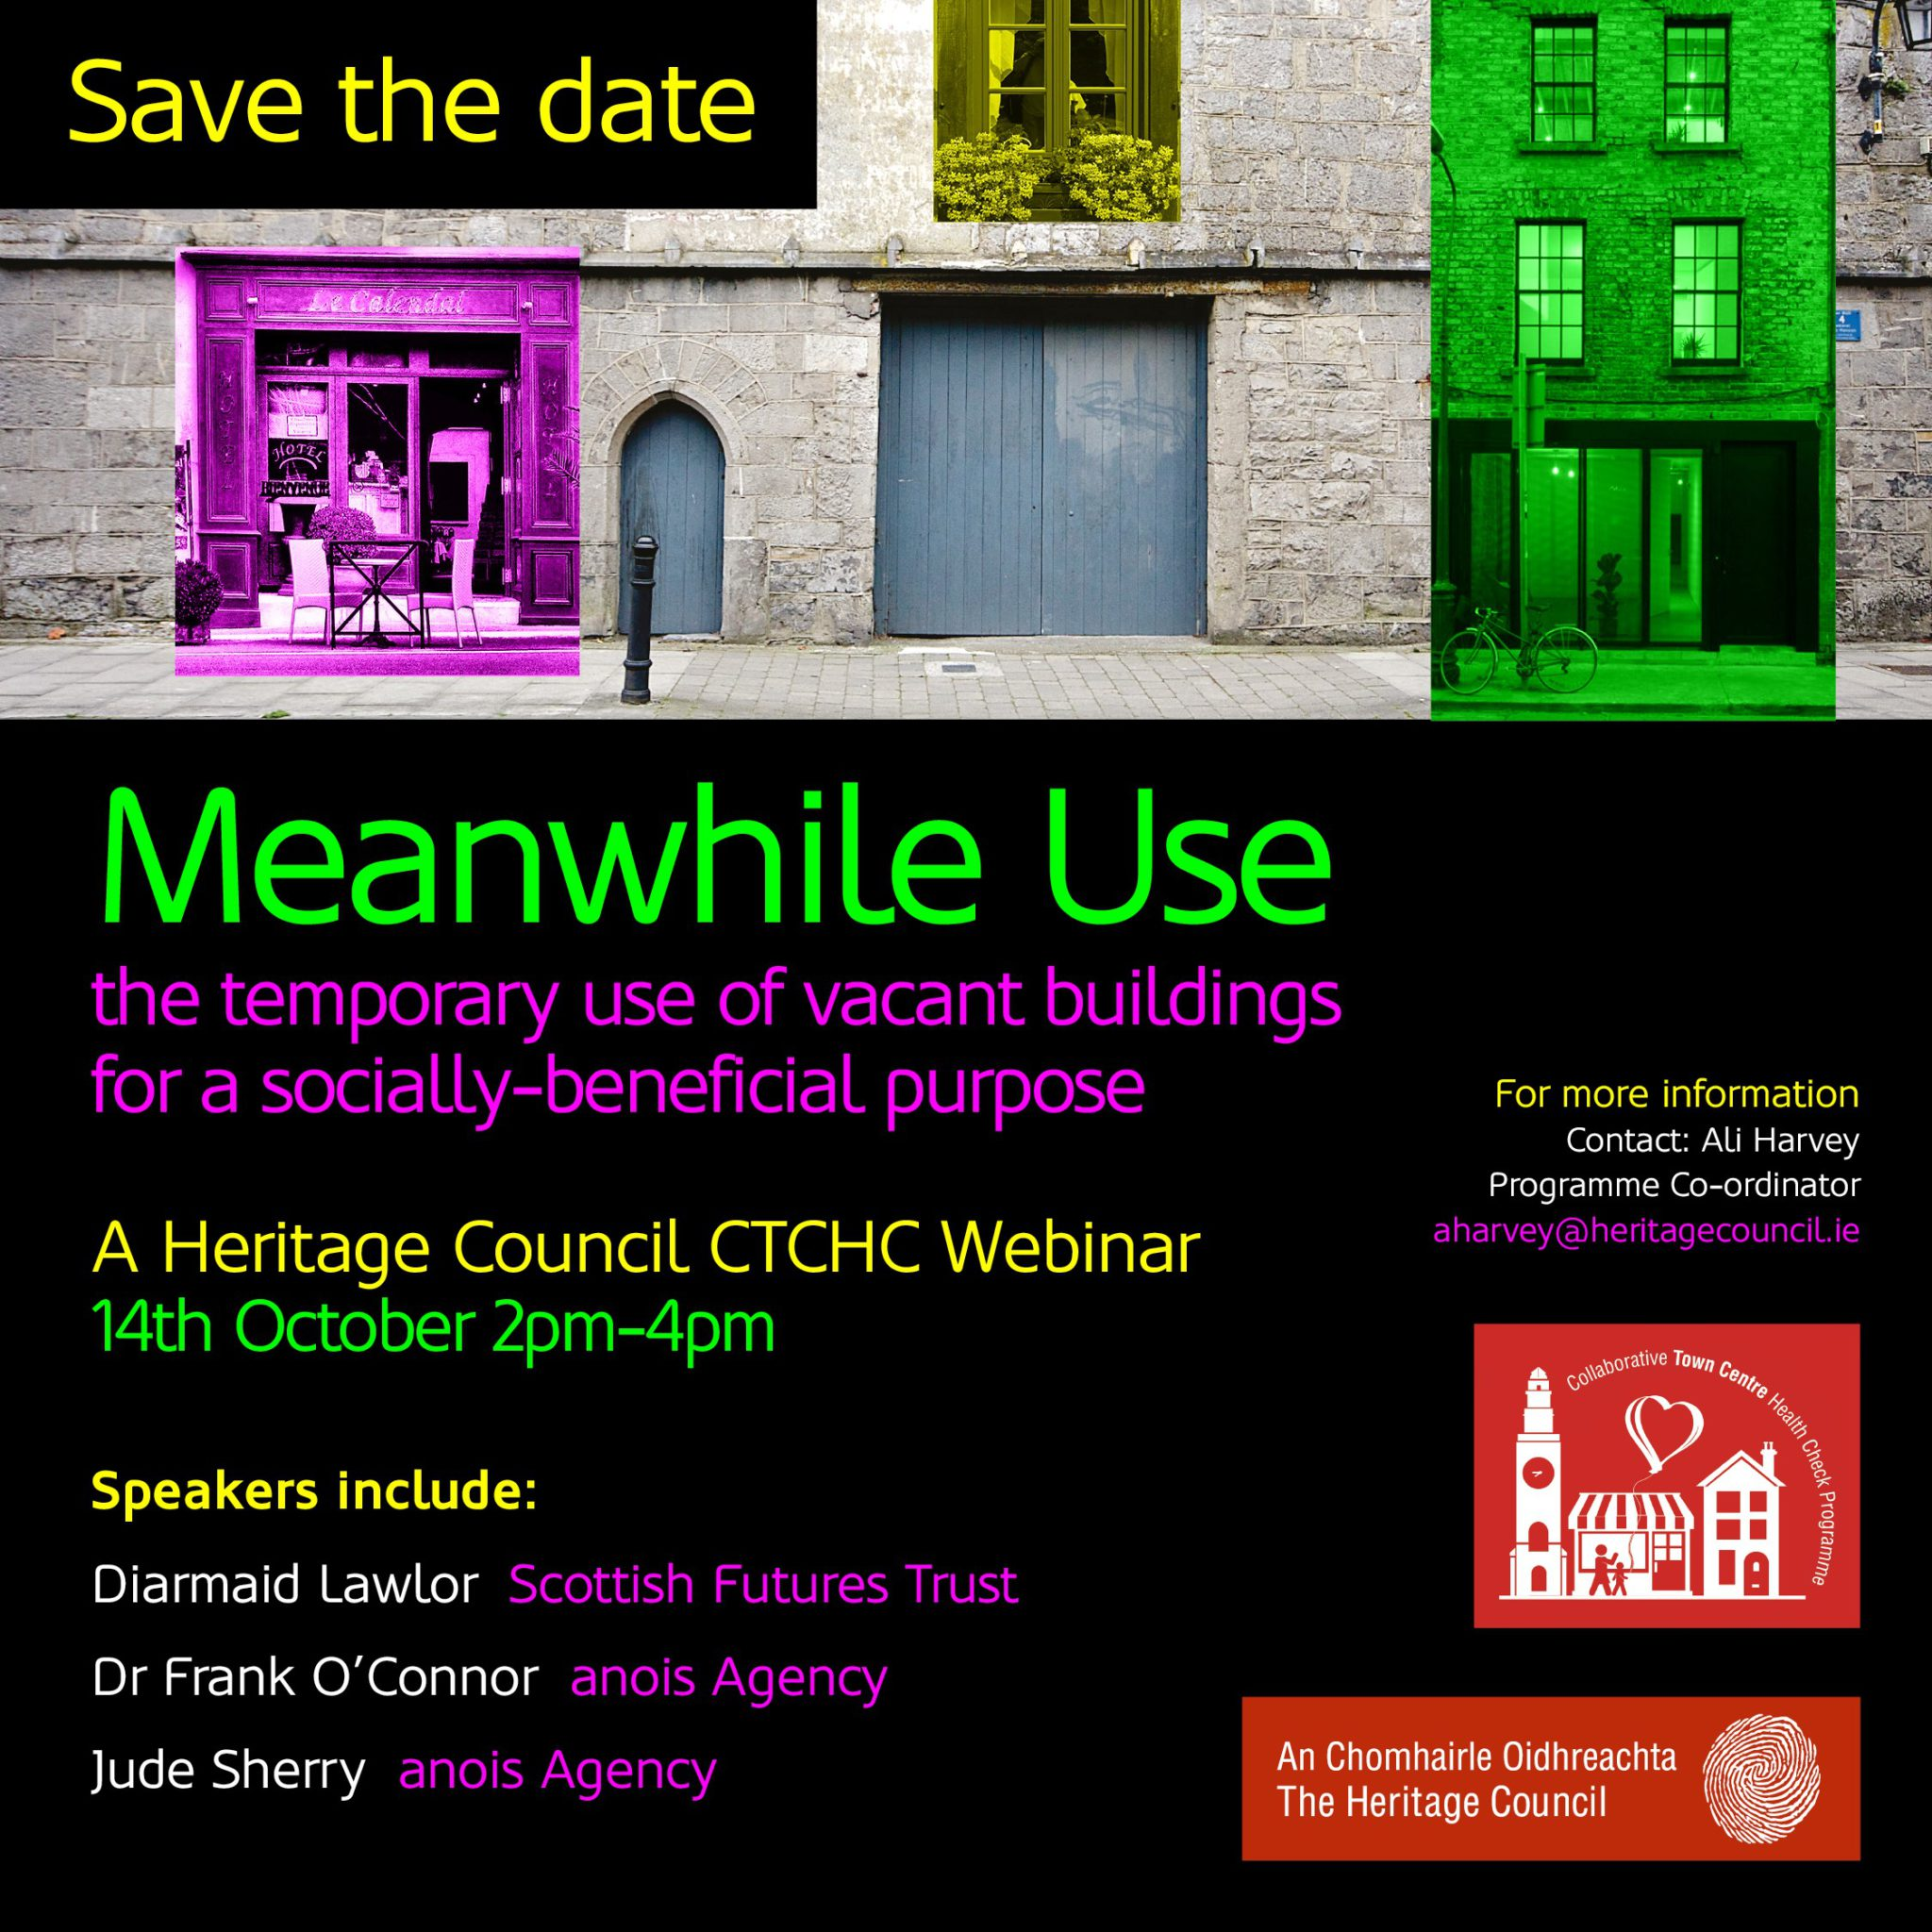 'Meanwhile Use' and the temporary use of vacant buildings for a socially beneficial purpose